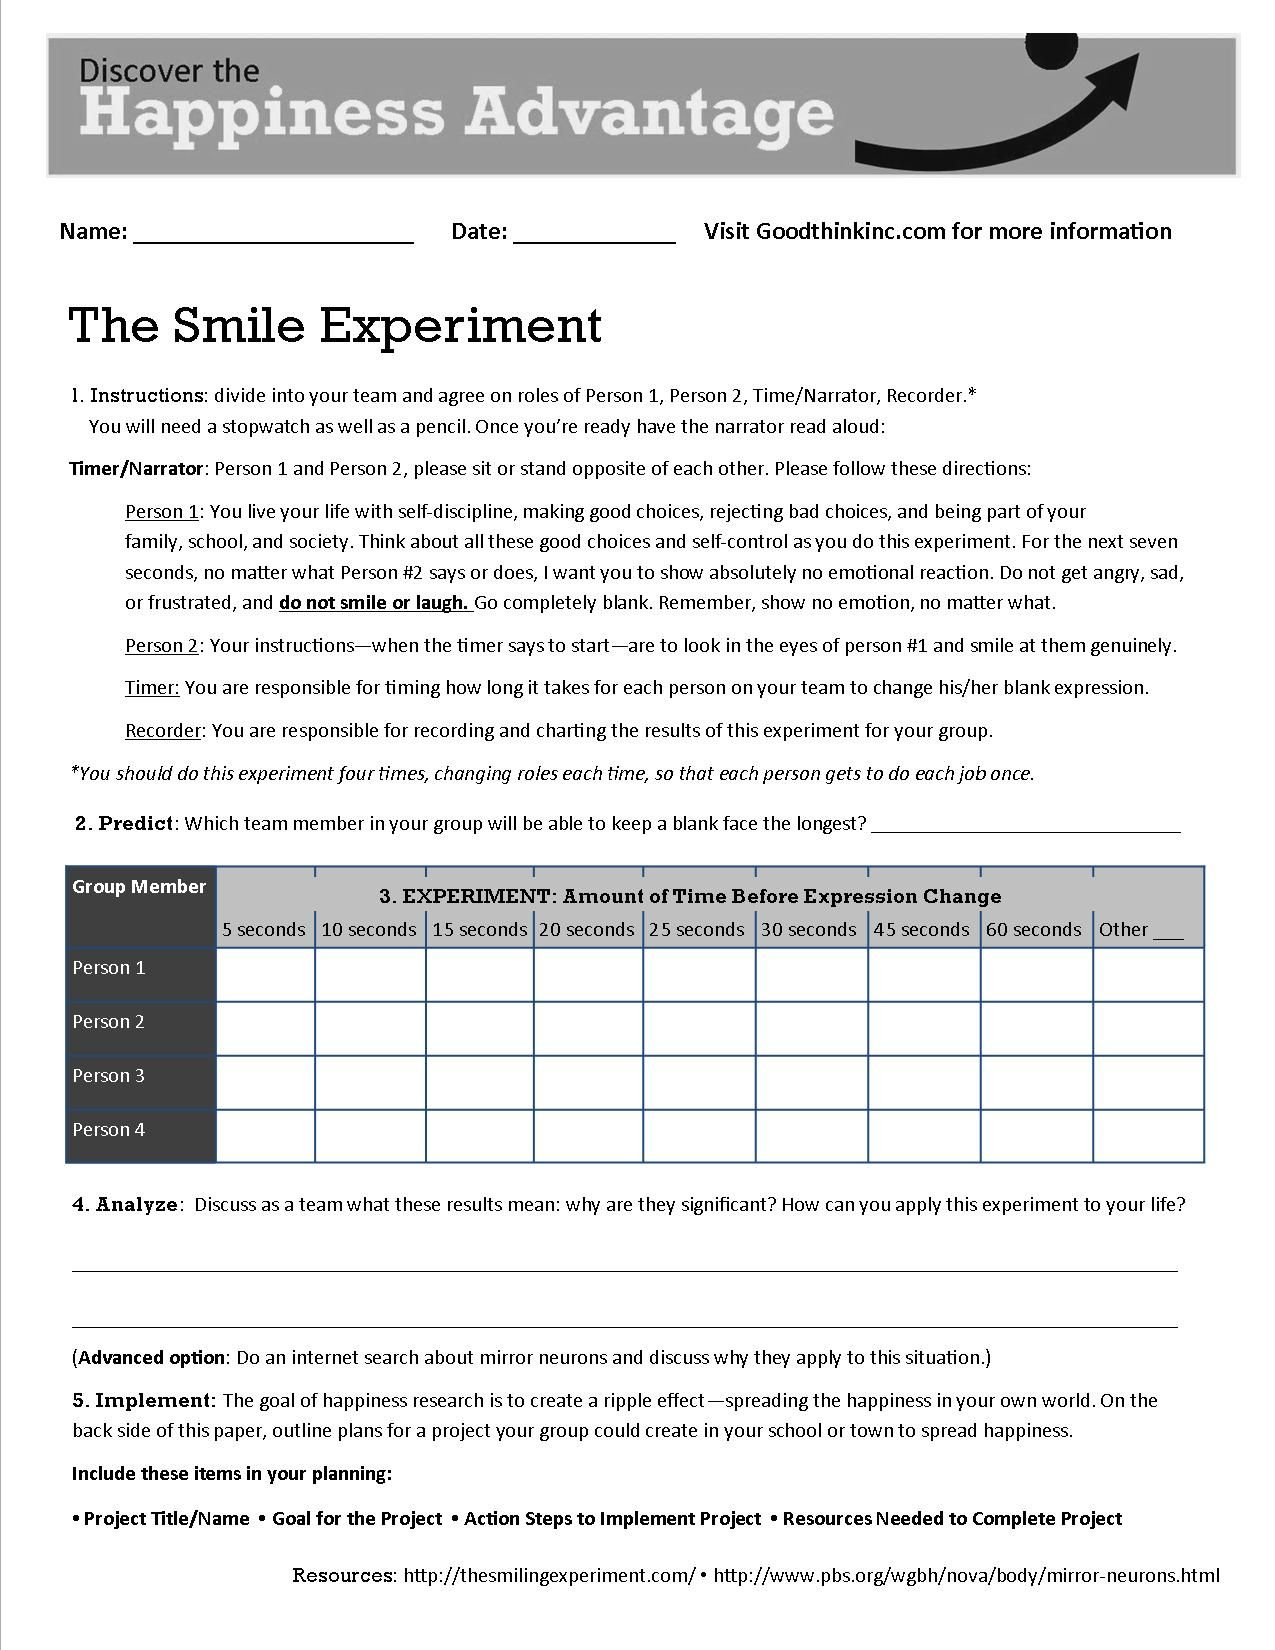 This Is Goodthink's Smile Experiment Worksheet That Turns Our Smile | Printable Mental Health Worksheets For Adults